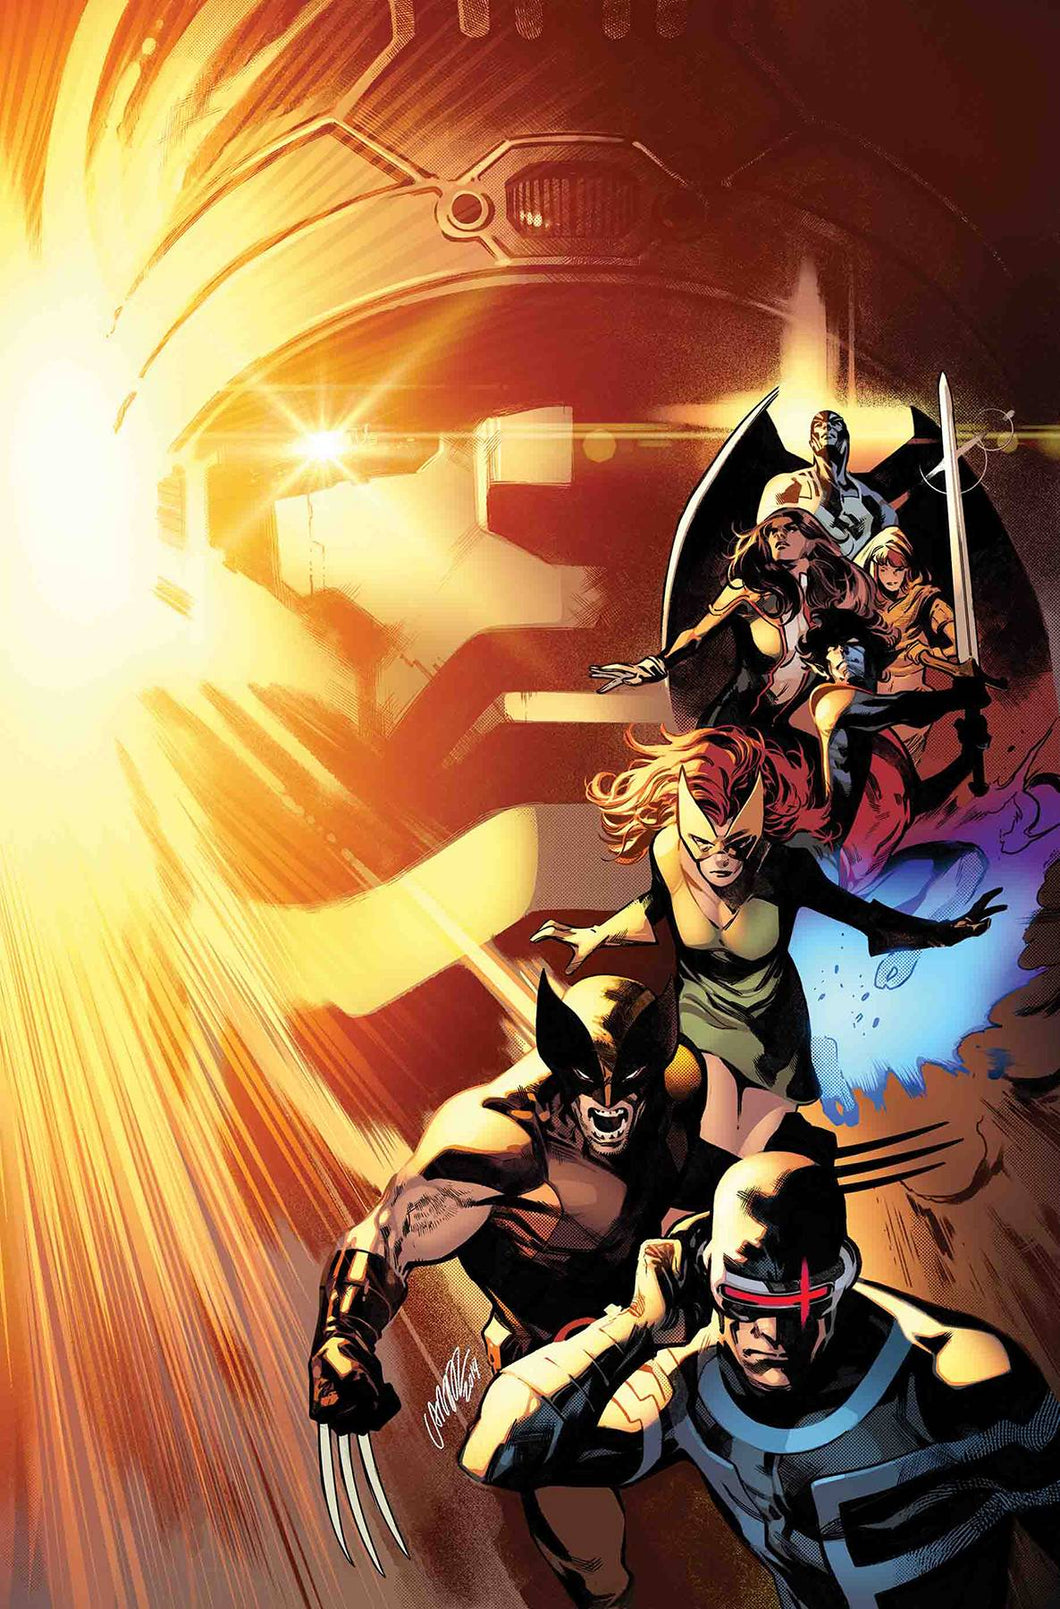 HOUSE OF X #3 (OF 6) 08/28/19 FOC 08/05/19